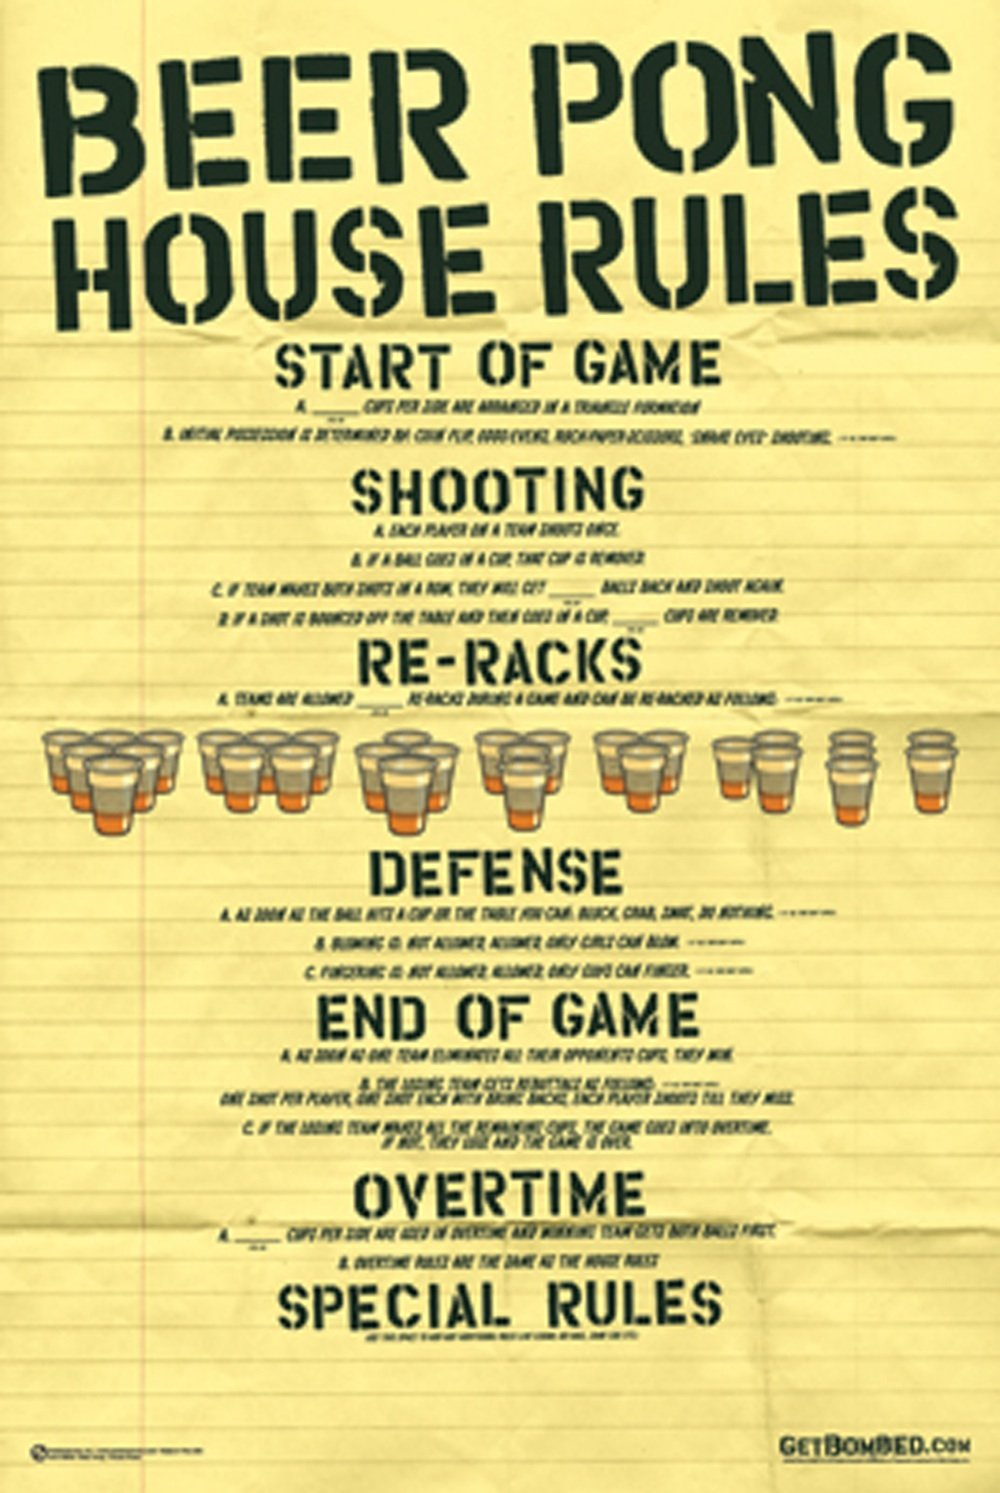 Amazon.com: NMR 88845 Beer Pong Rules Decorative Poster: Prints ...